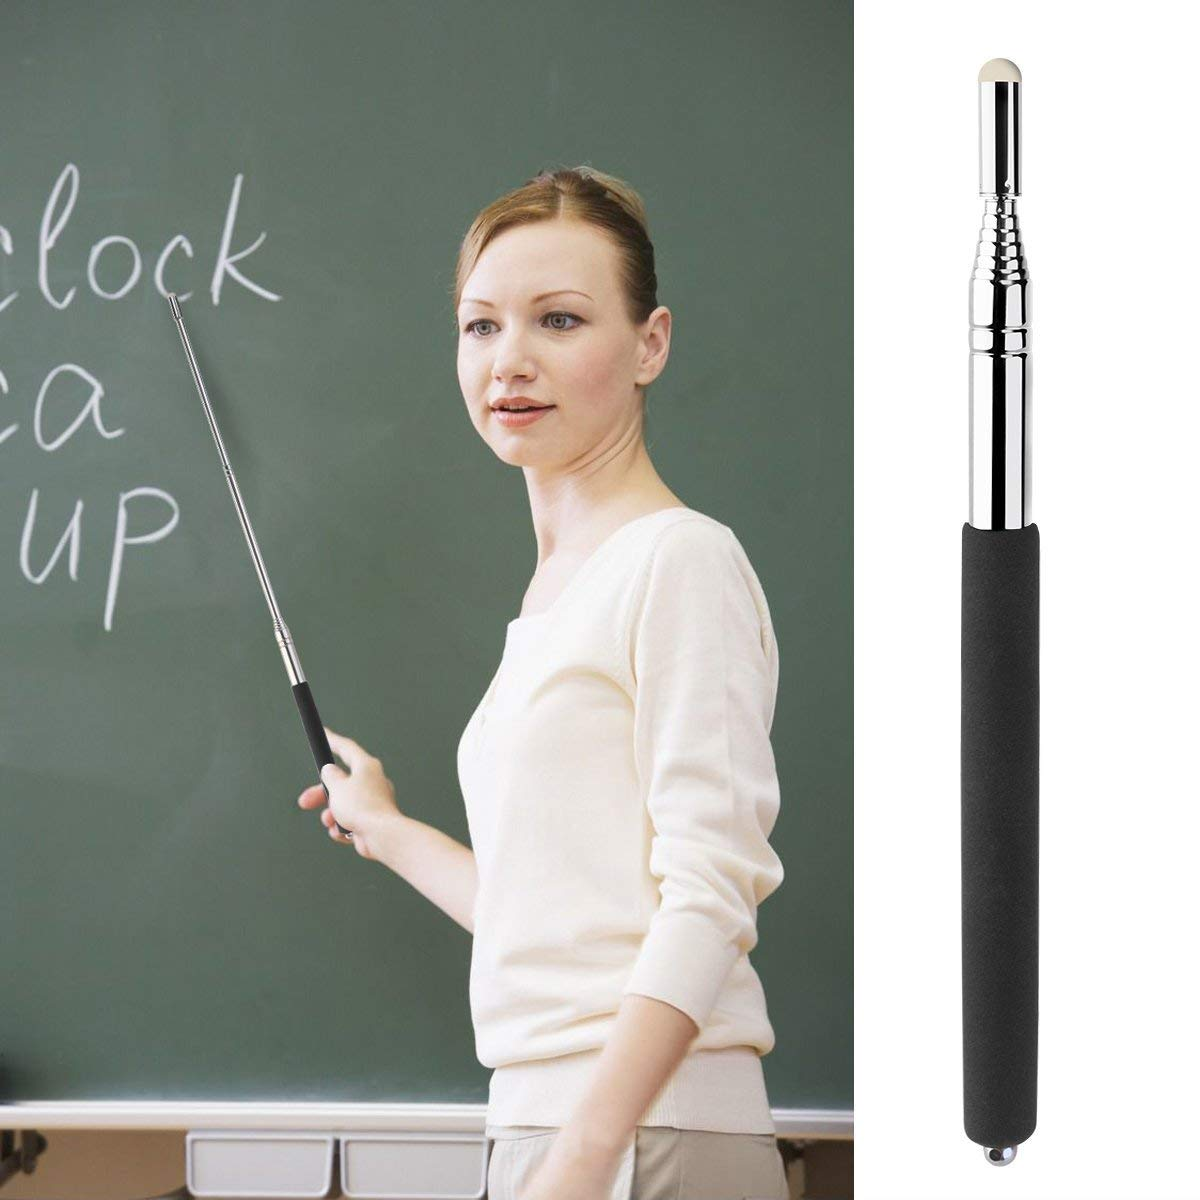 MODOLO Telescoping Pointers Retractable Handheld Presenter Extendable Classroom Whiteboard Pointer Extends to 39 Inch,Set of 3